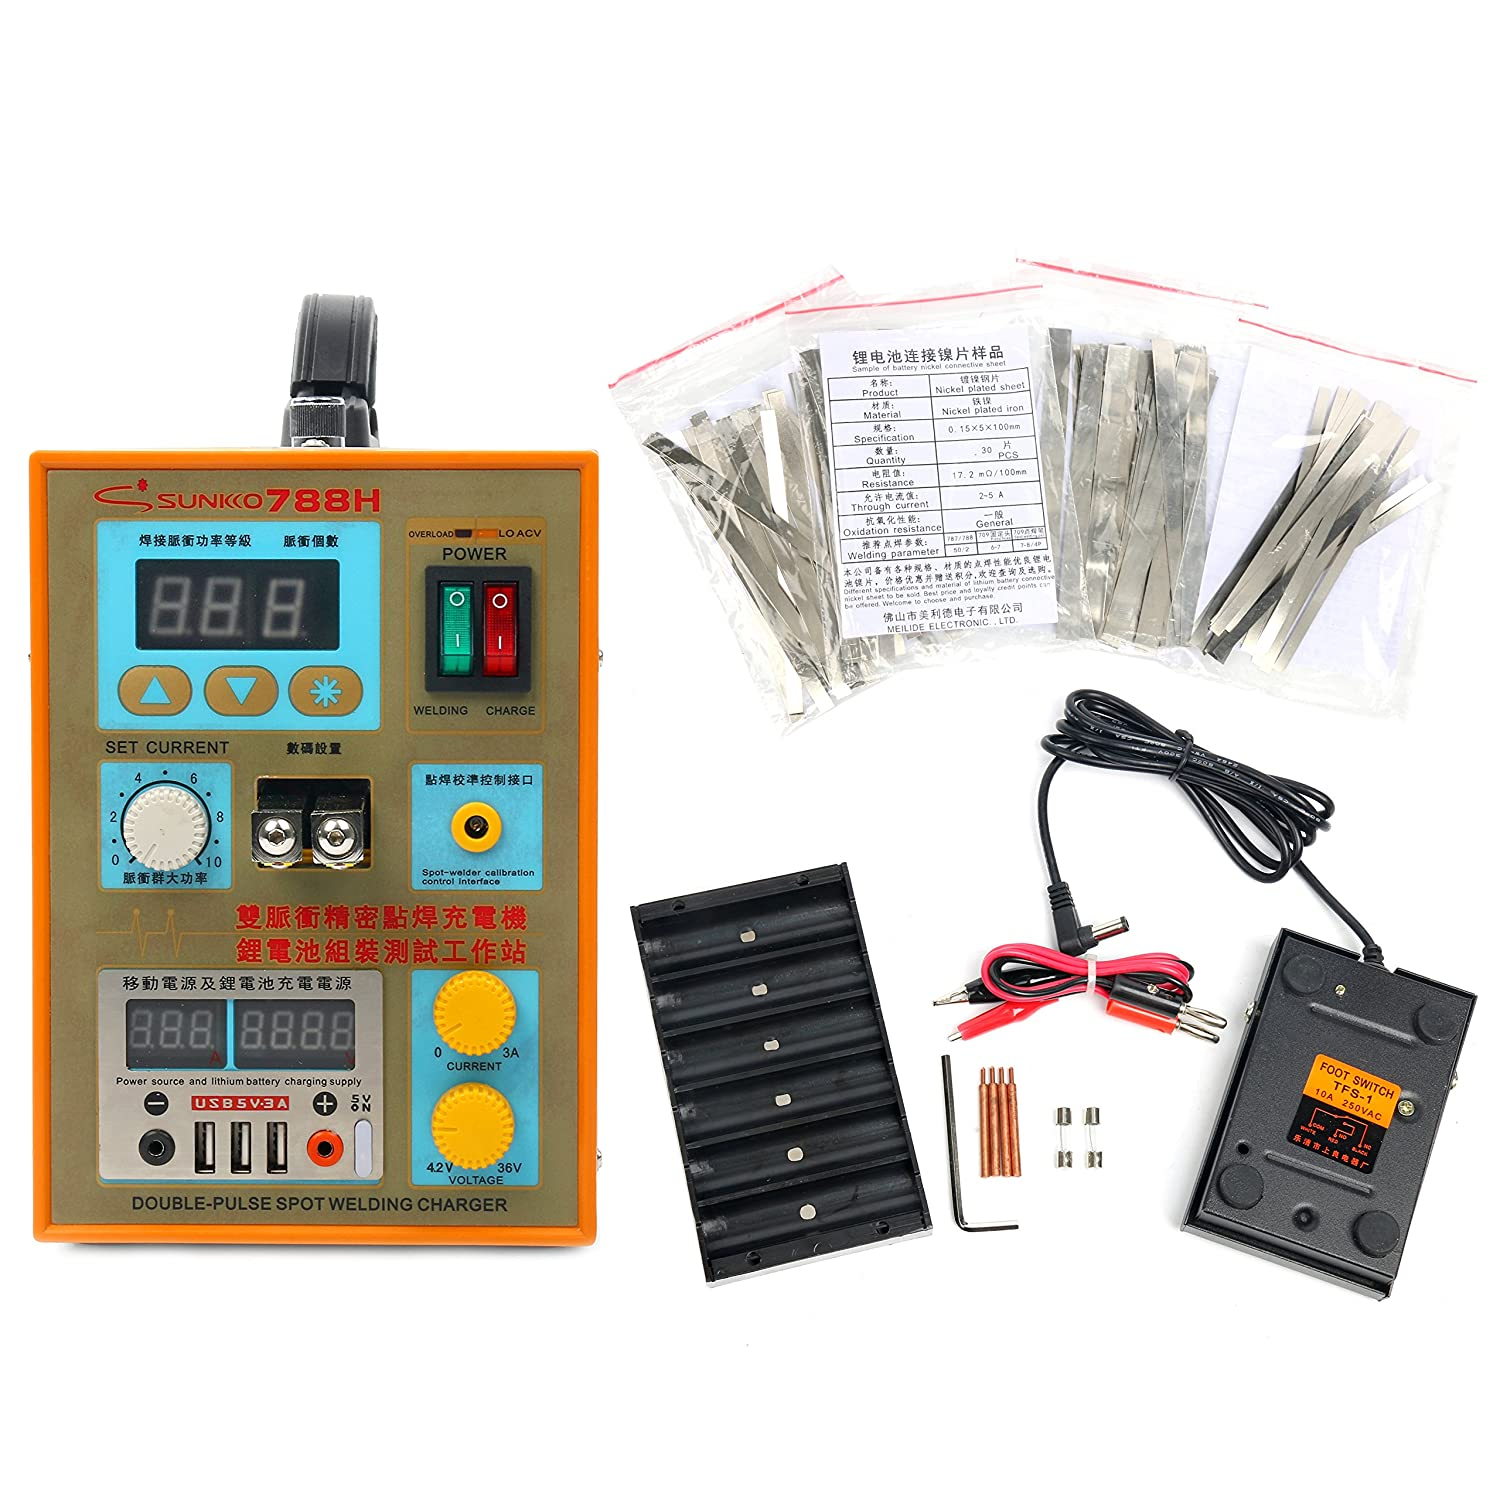 Sunkko S788h Usb Preciston Pulse Spot Welder Cc Cv Charge Power Controller Board Pcb Without Components Bank Test